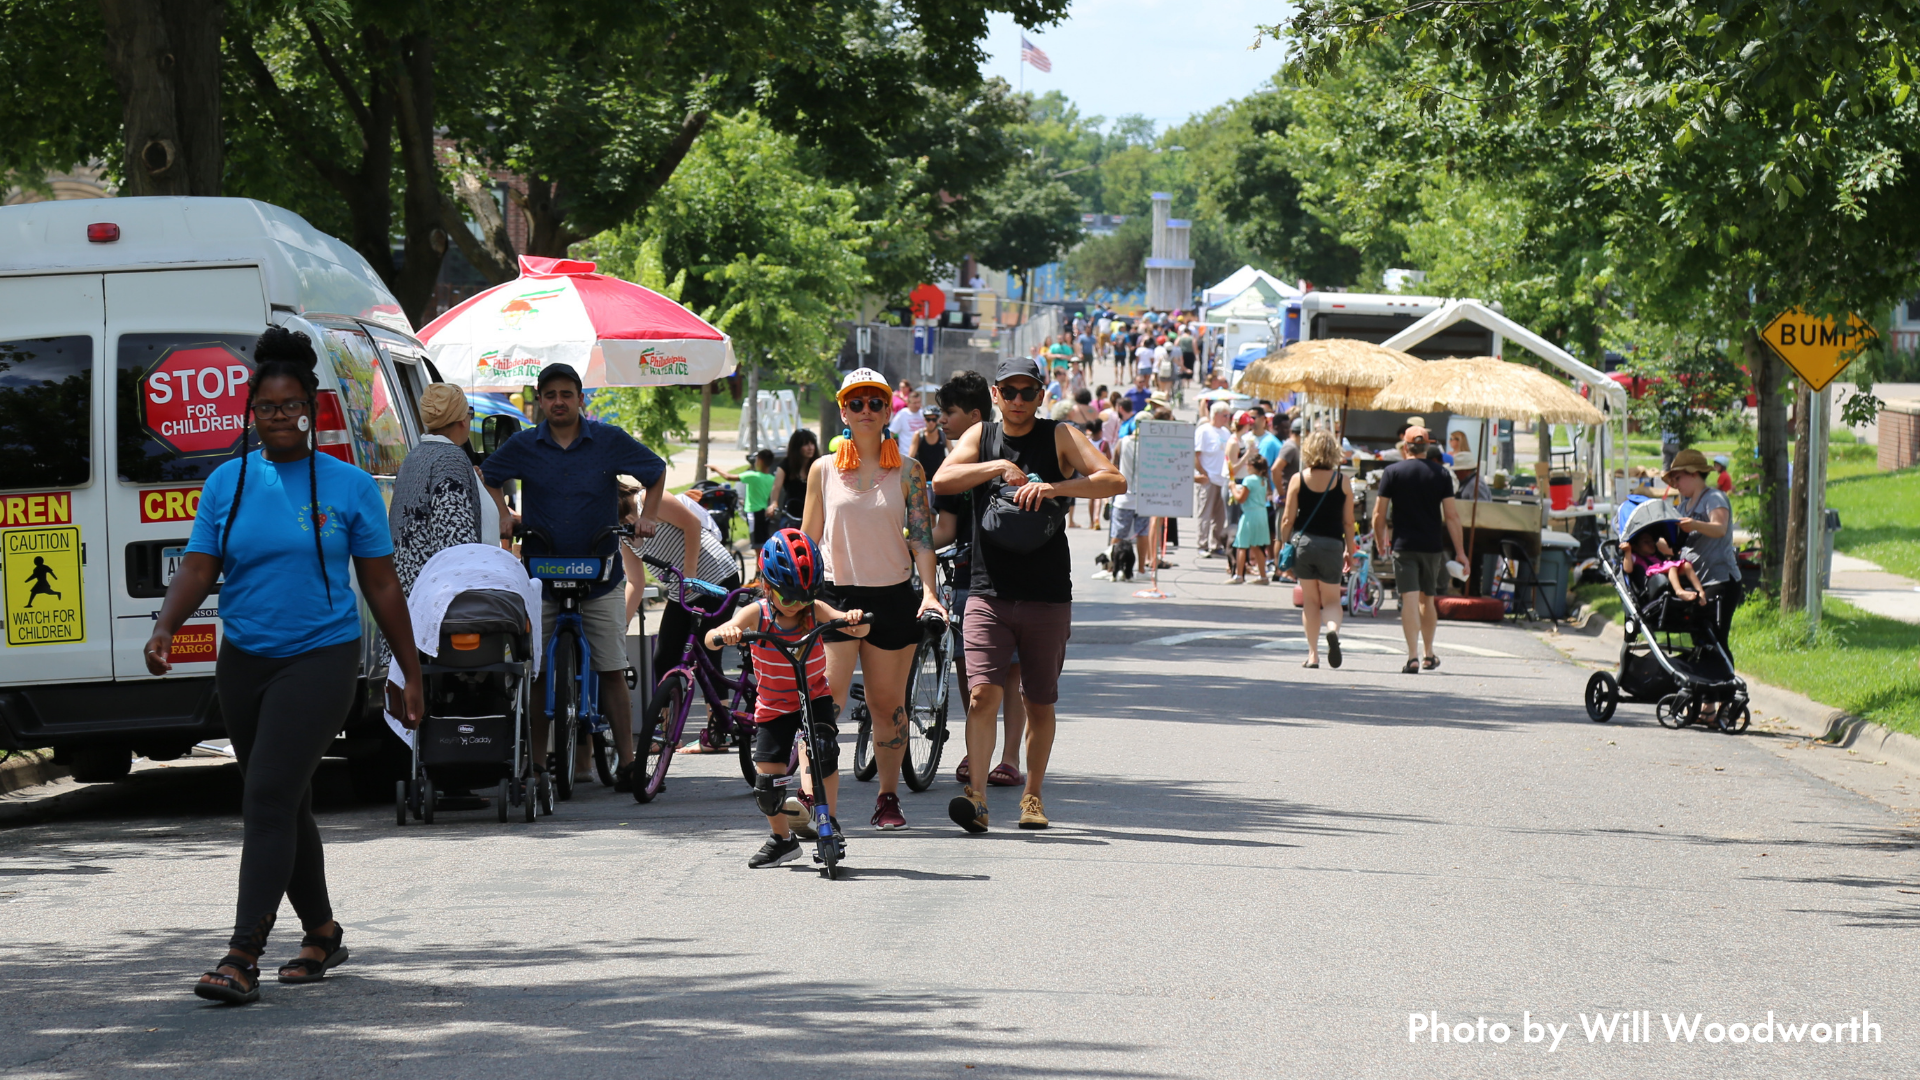 People walking on a tree-lined street at Open Streets Northeast 2019